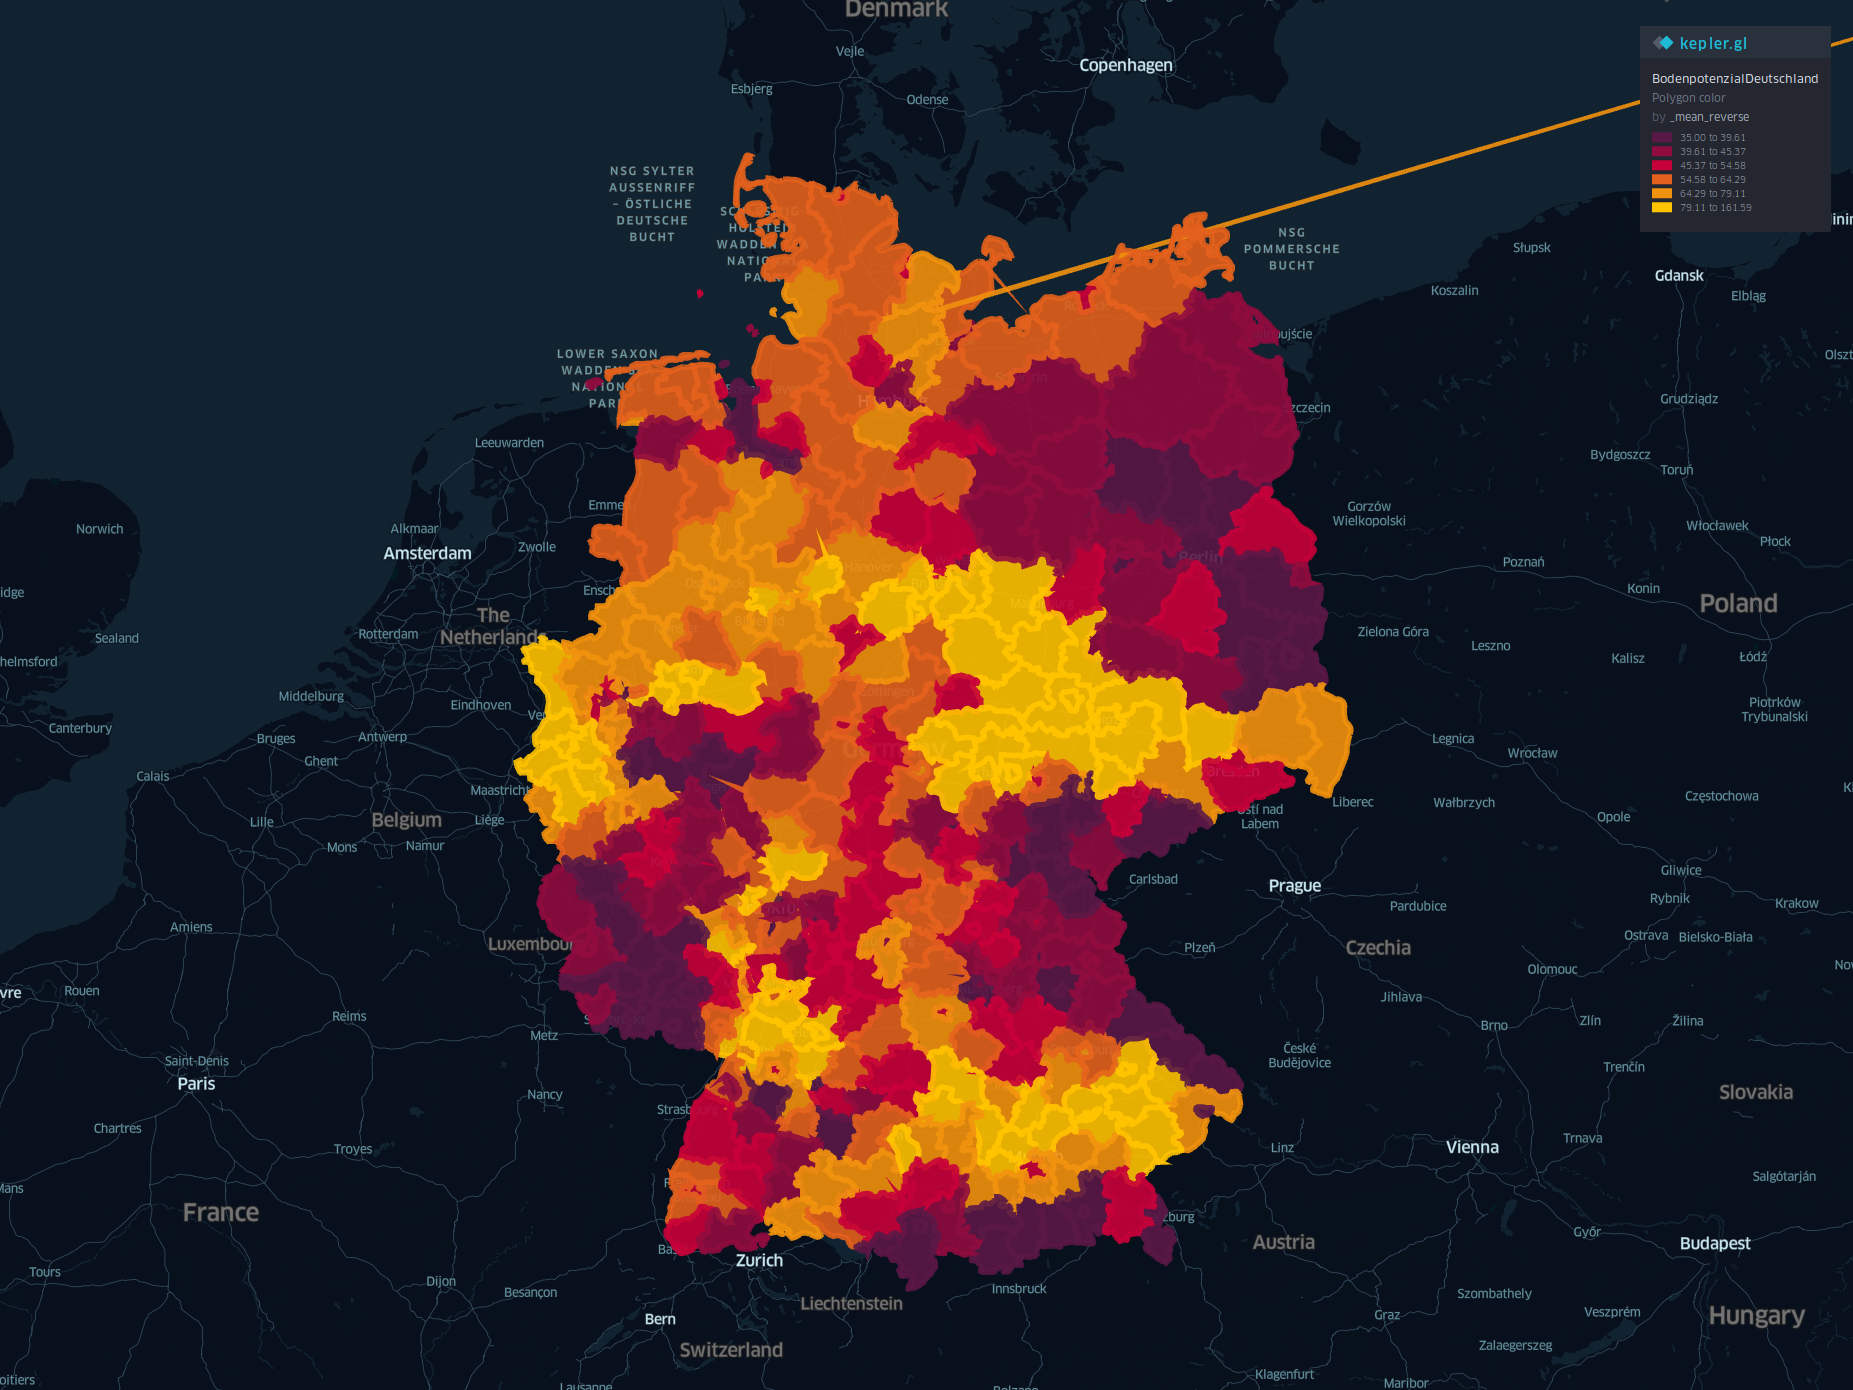 Visualizing farmland property prices in germany based on 2016 sales